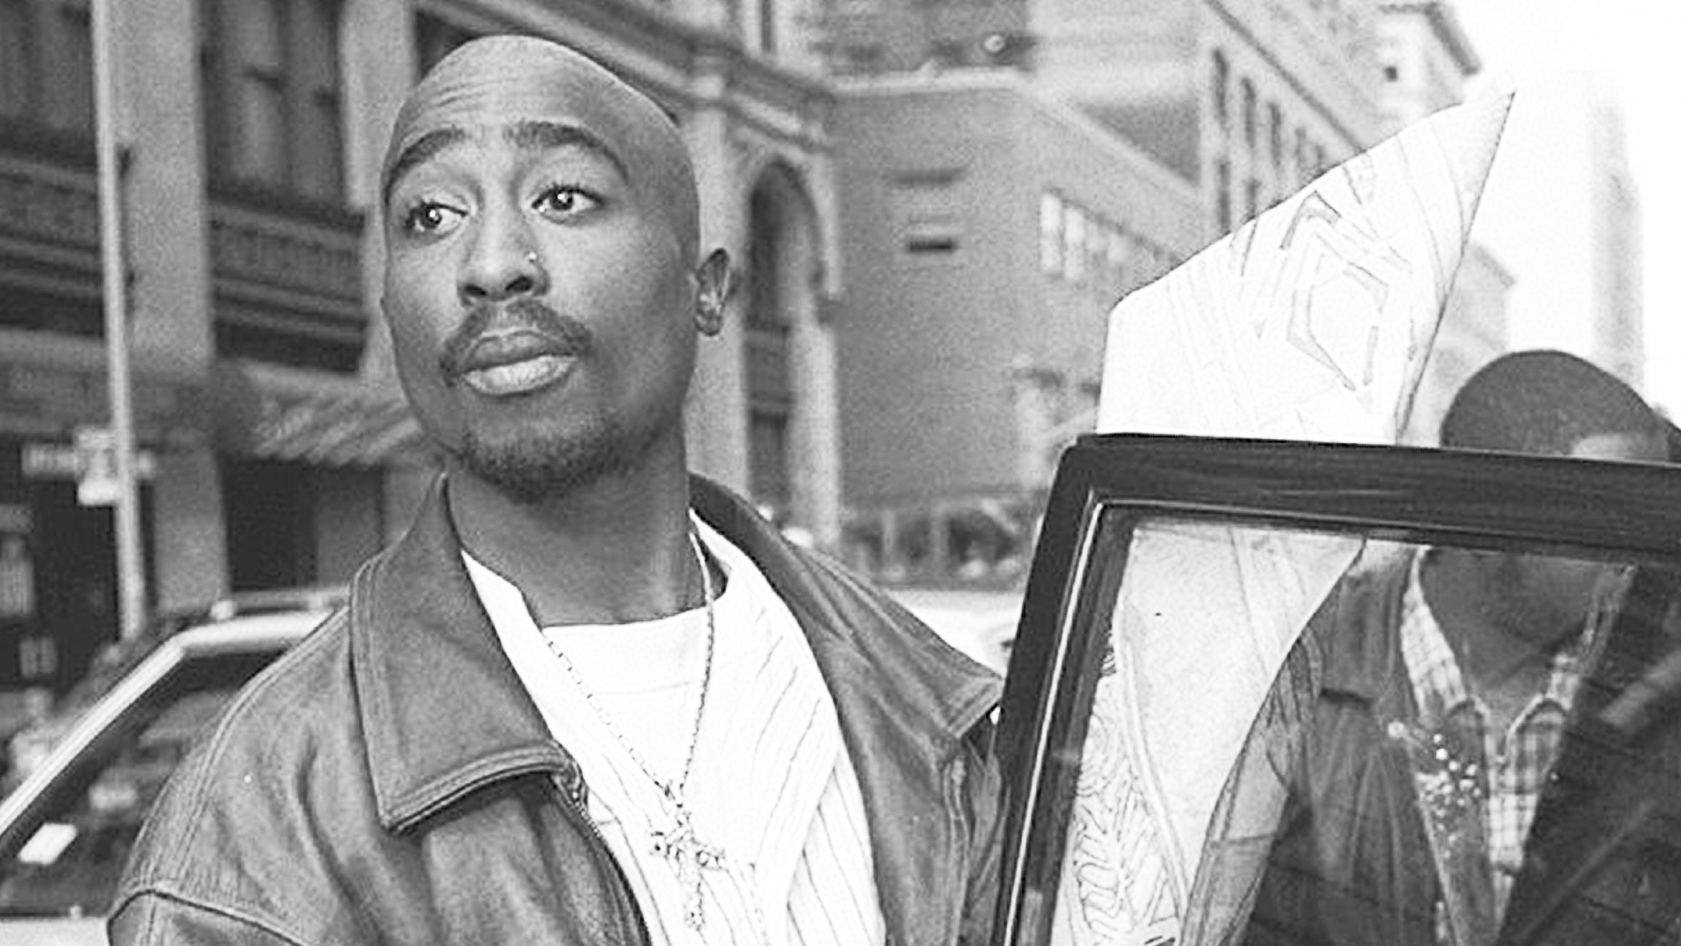 Tupac Shakur outside criminal court.